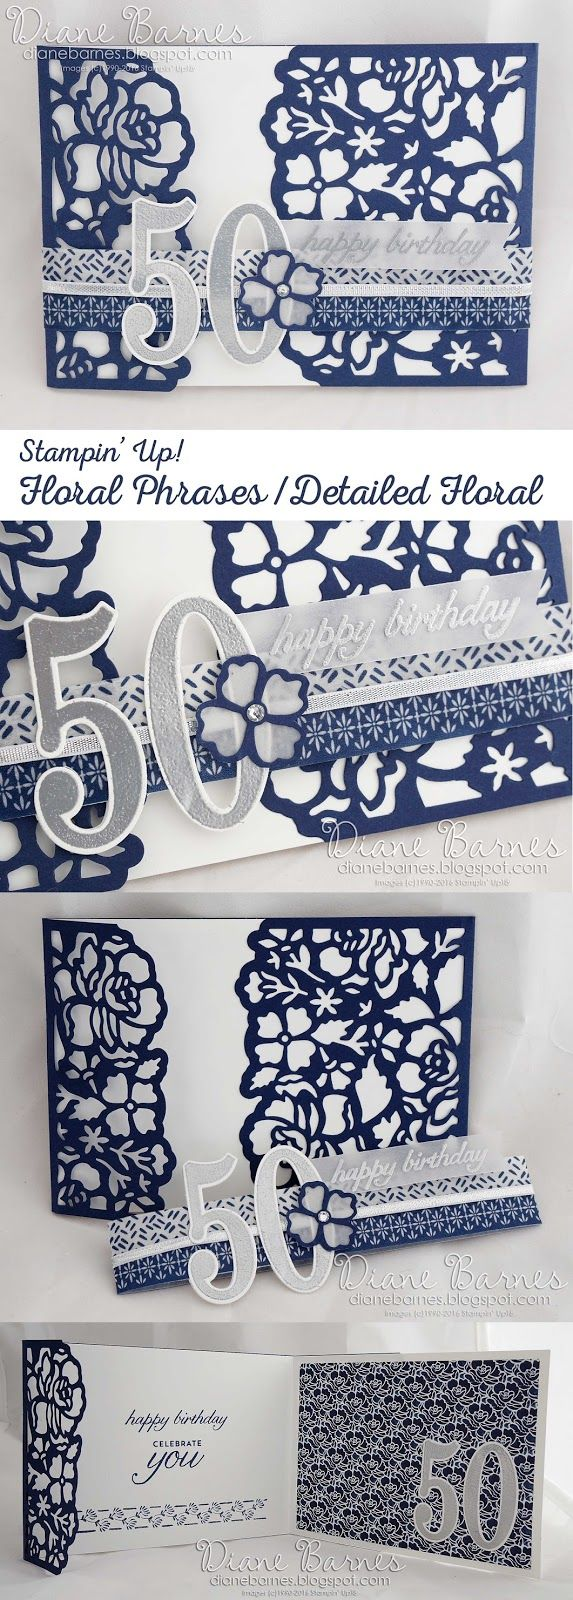 aged birthday - navy & white floral 50th birthday card using Stampin Up Floral Phrases / Detailed Floral bundle. 2016-17 annual catalogue. By Di Barnes…